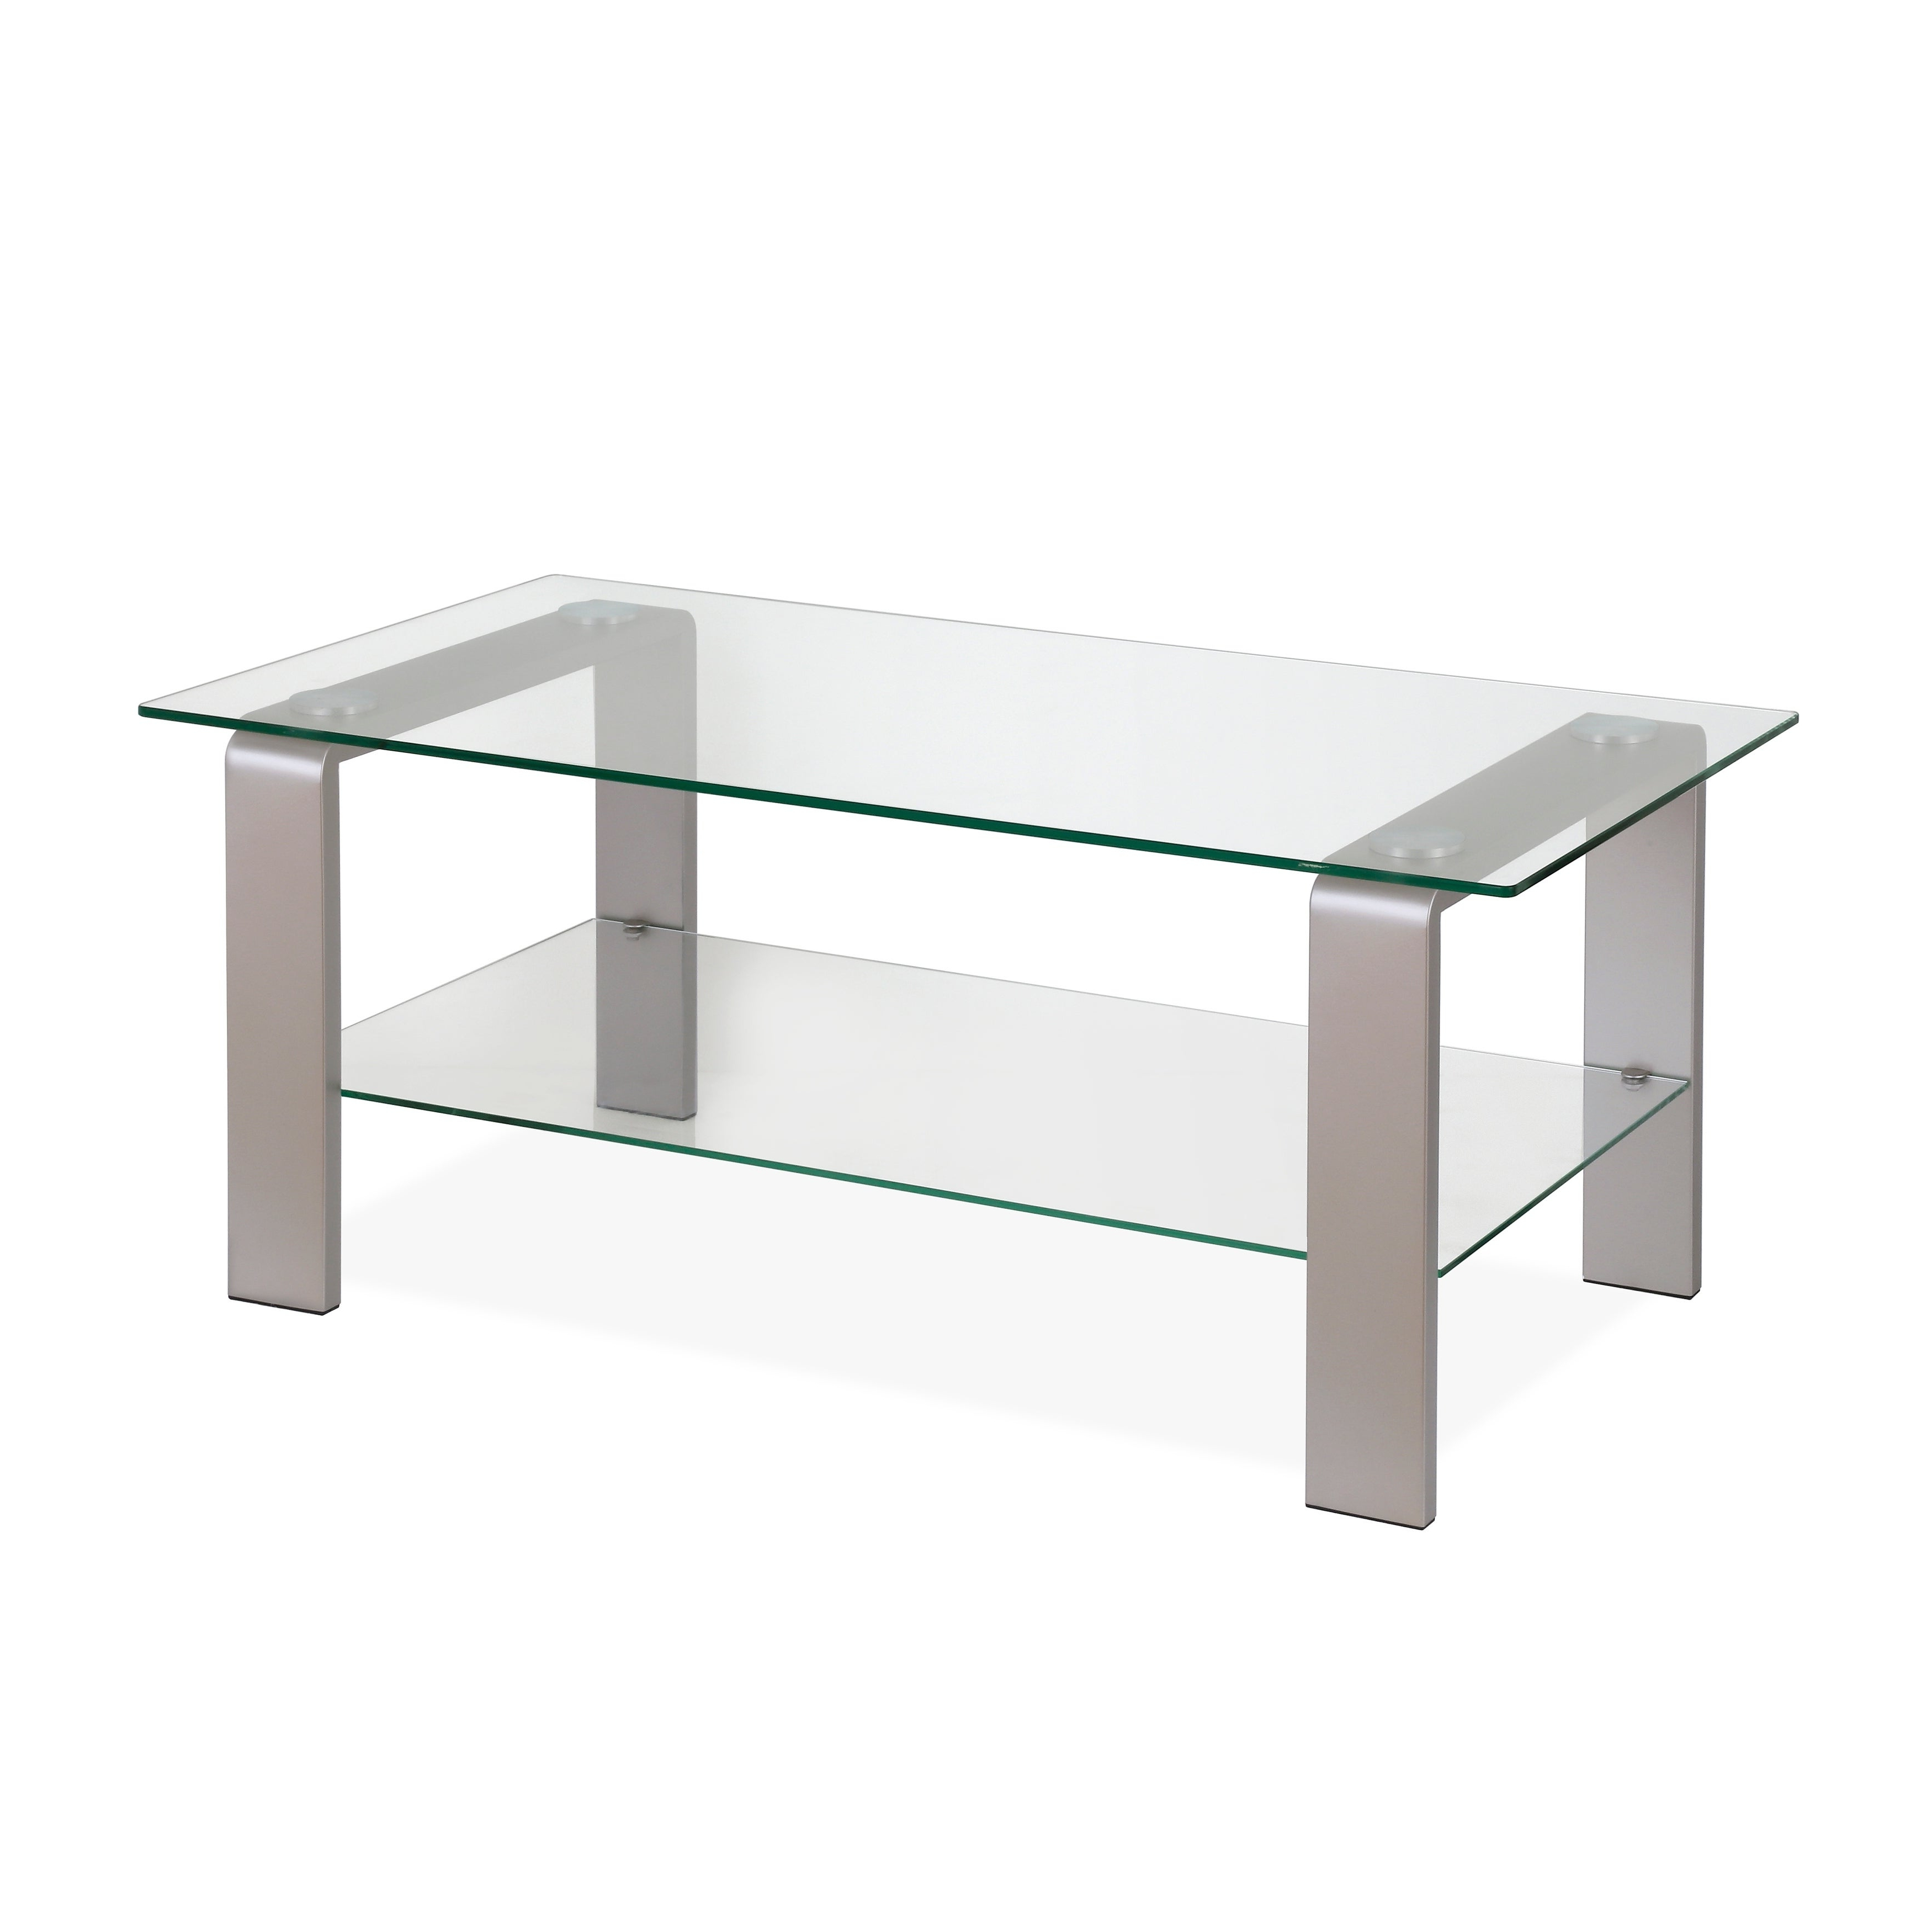 Most Current Finbar Modern Rectangle Glass Coffee Tables Throughout Asta Metal & Glass Coffee Table In Silver Nickel Finish (View 14 of 20)